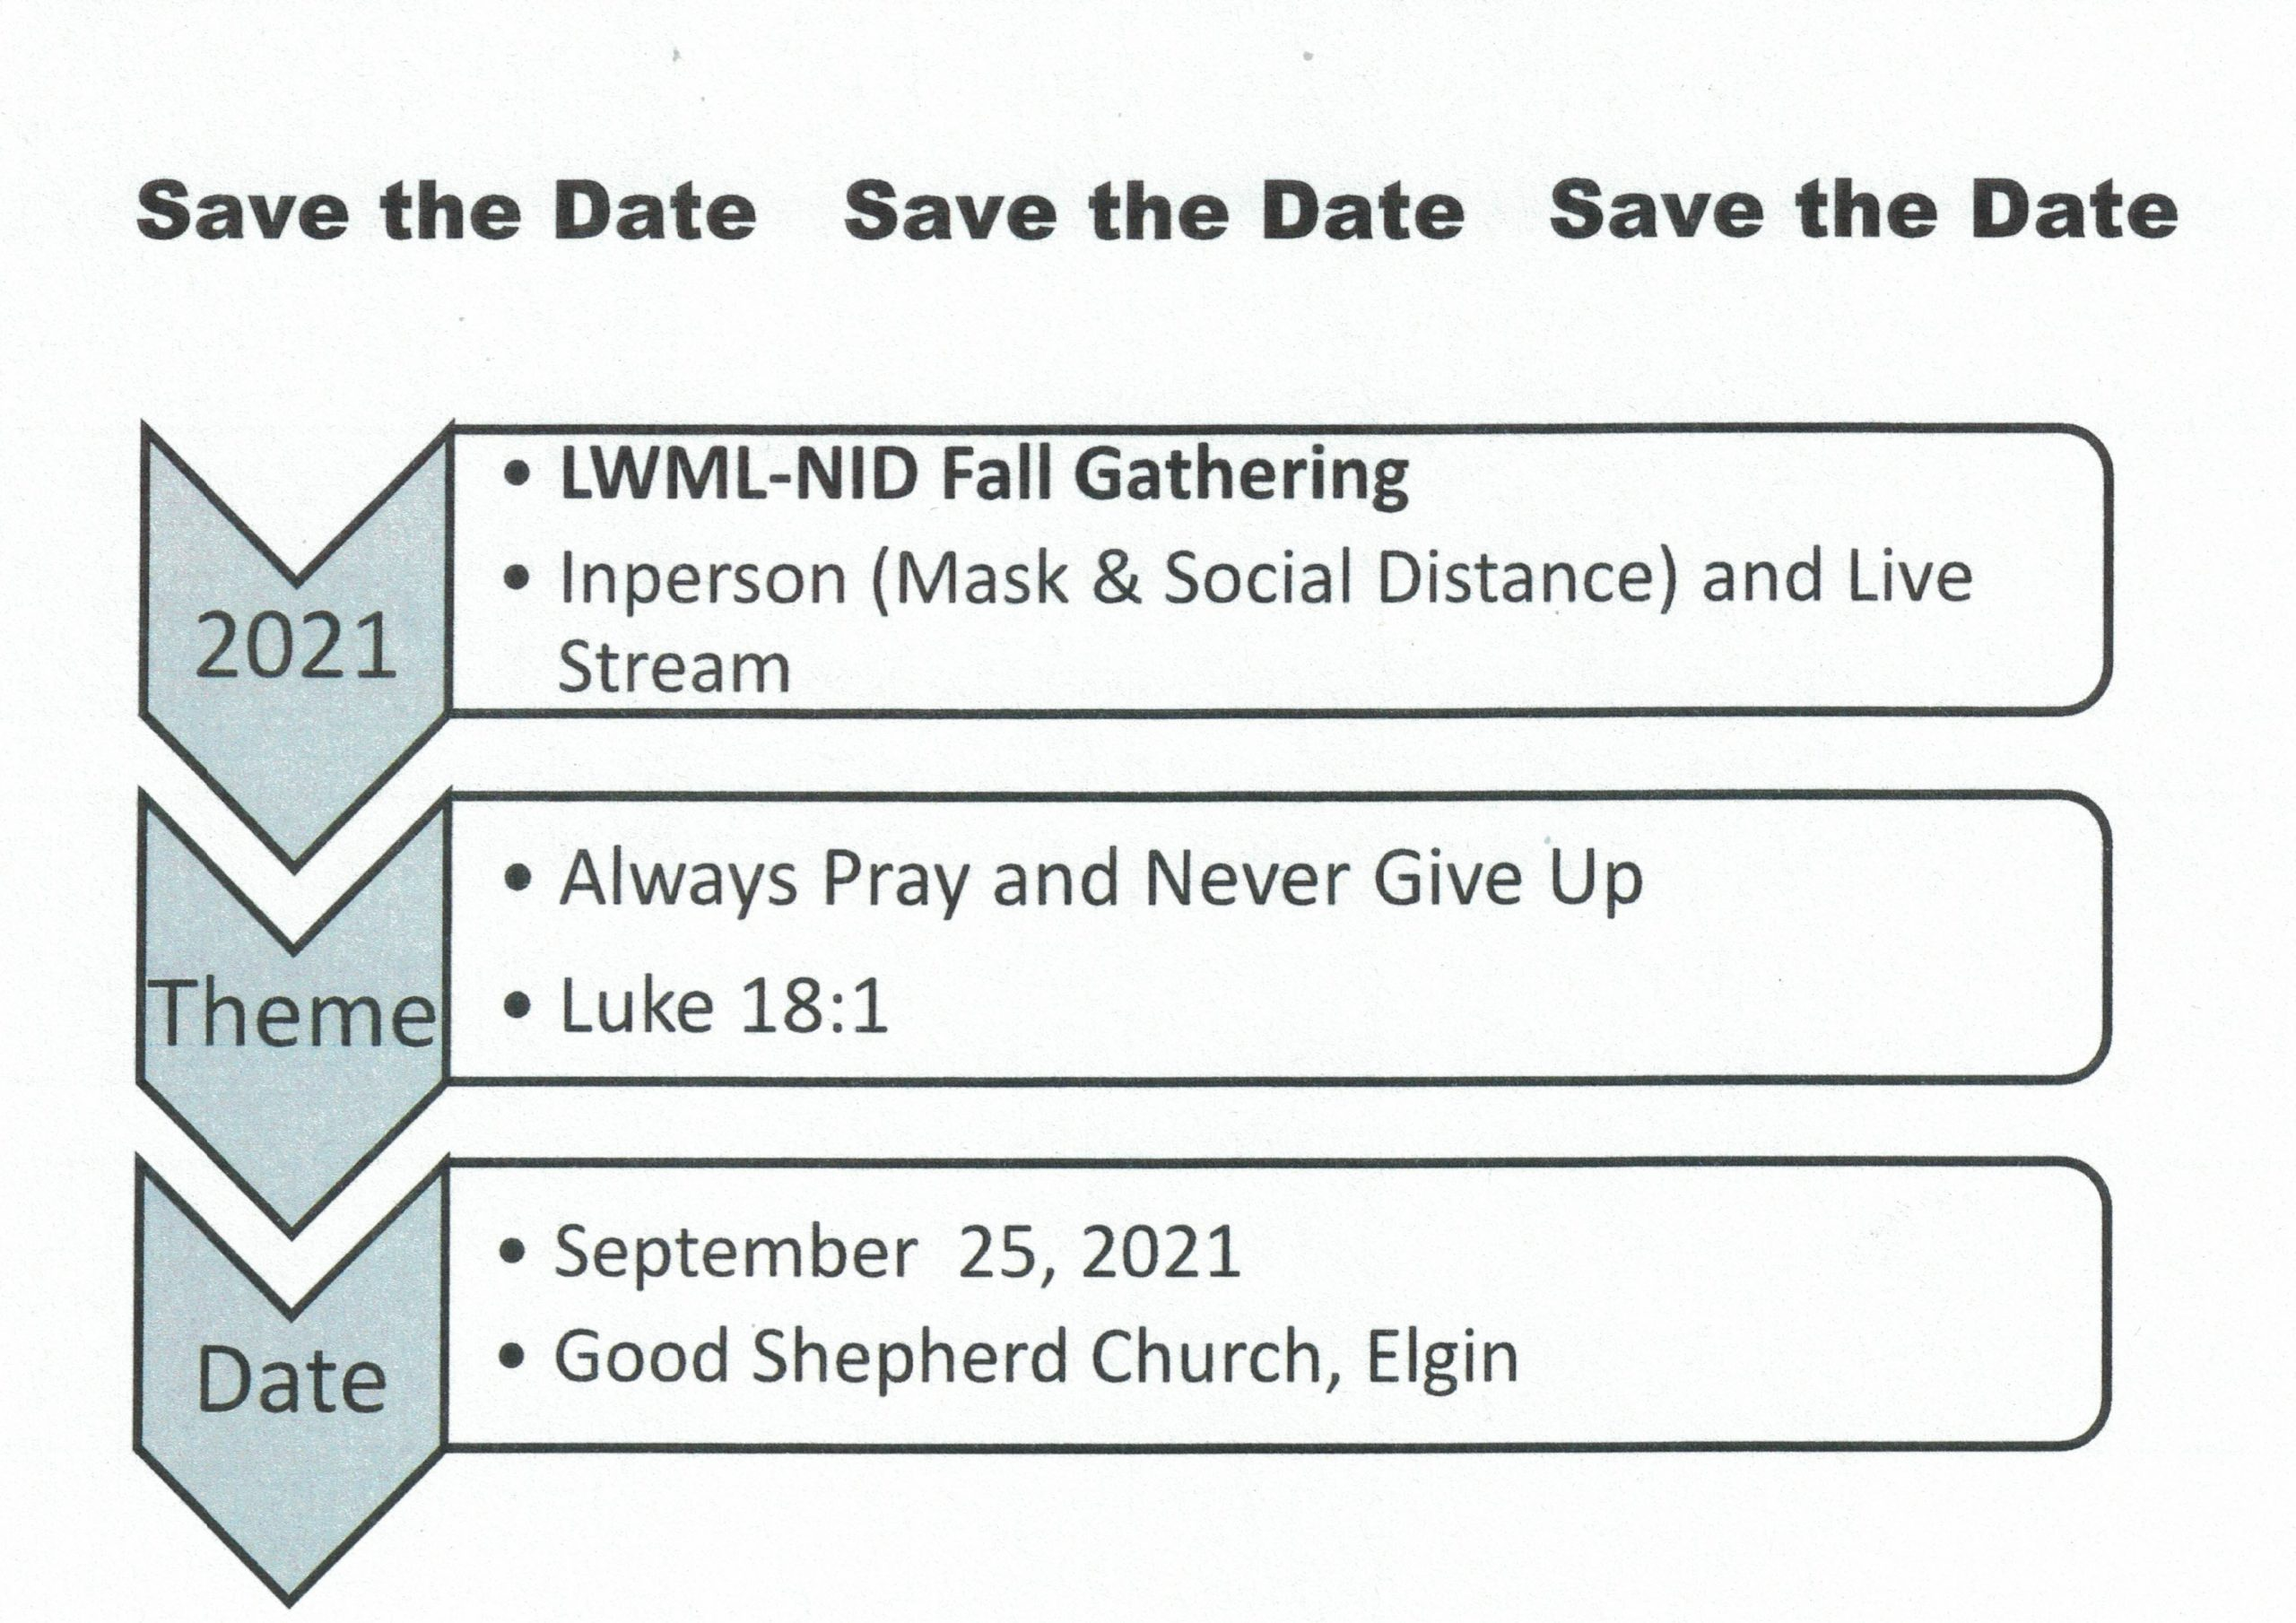 Save the Date flyer for the LWML NID Fall Gathering 2021 in Elgin, IL